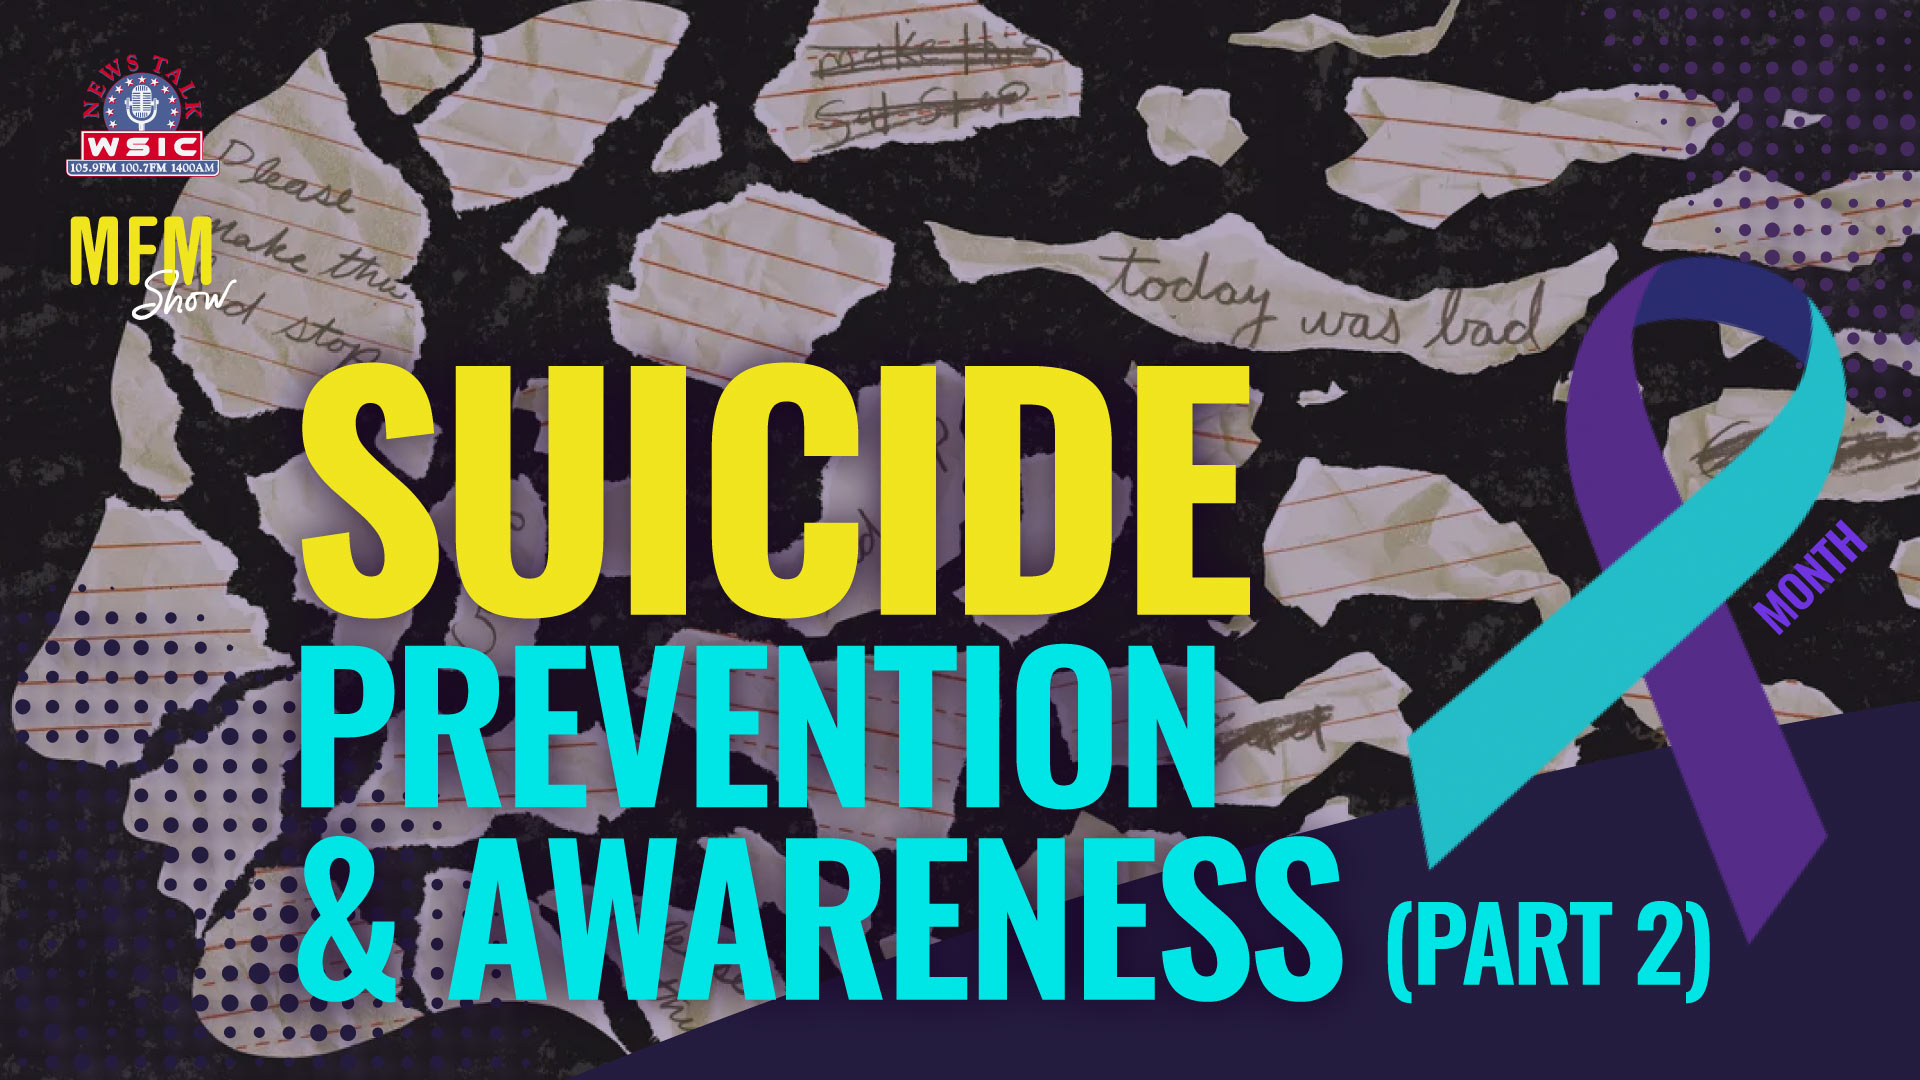 Suicide Prevention and Awareness Month (PART 2)